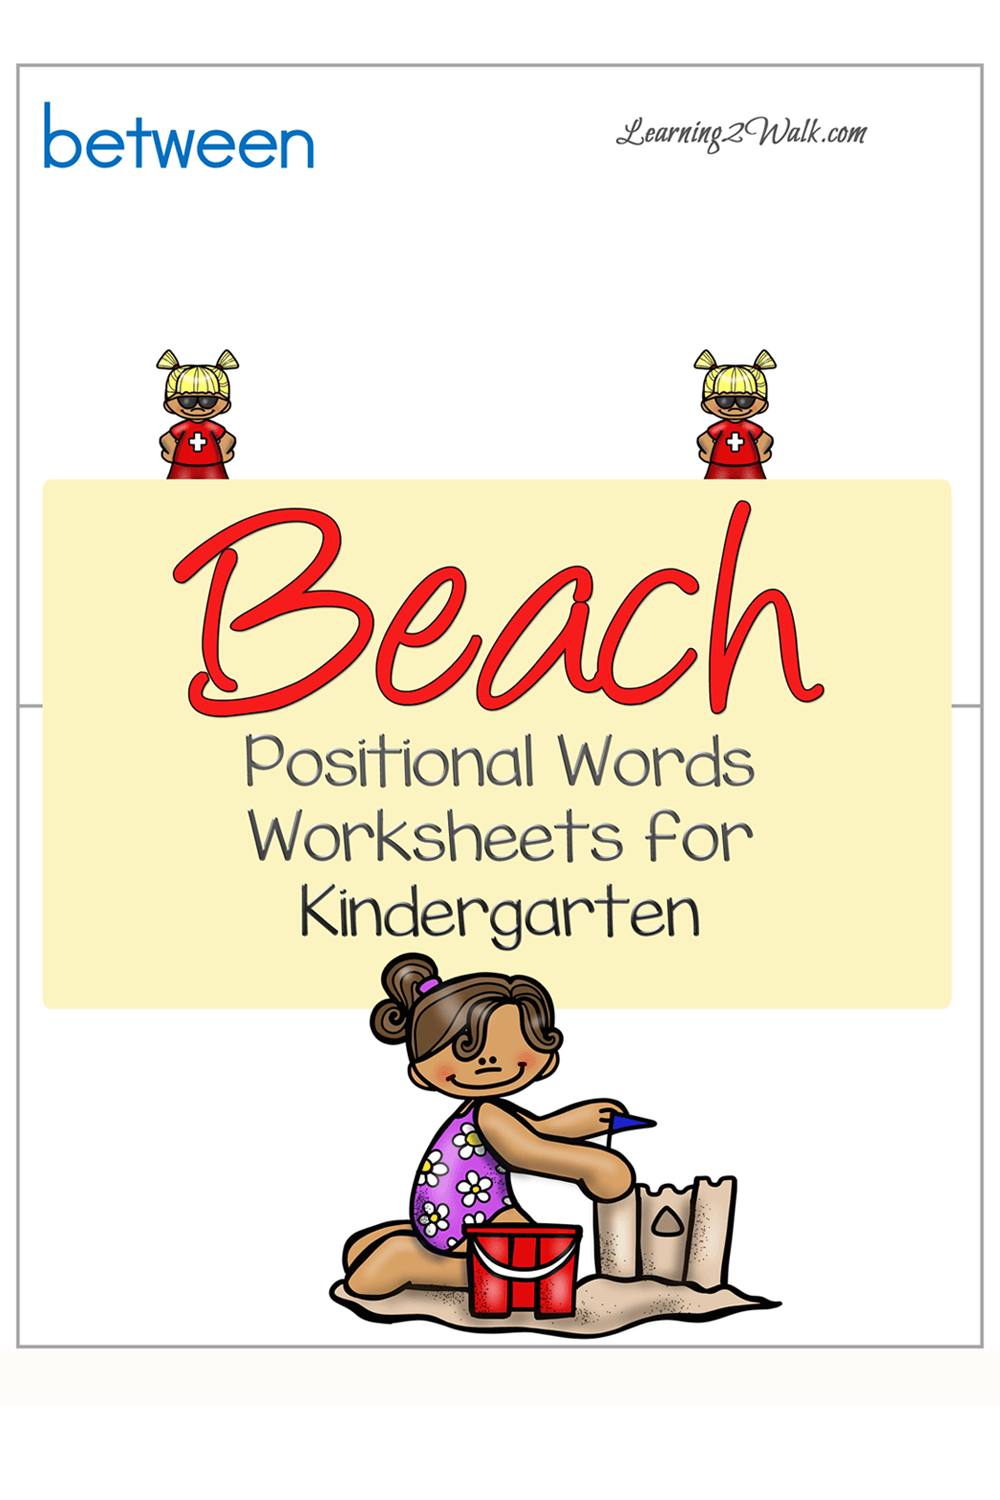 Worksheets Positional Words Worksheets For Kindergarten beach positional words worksheets for kindergarten homeschool summer is here so why not use these kindergarten